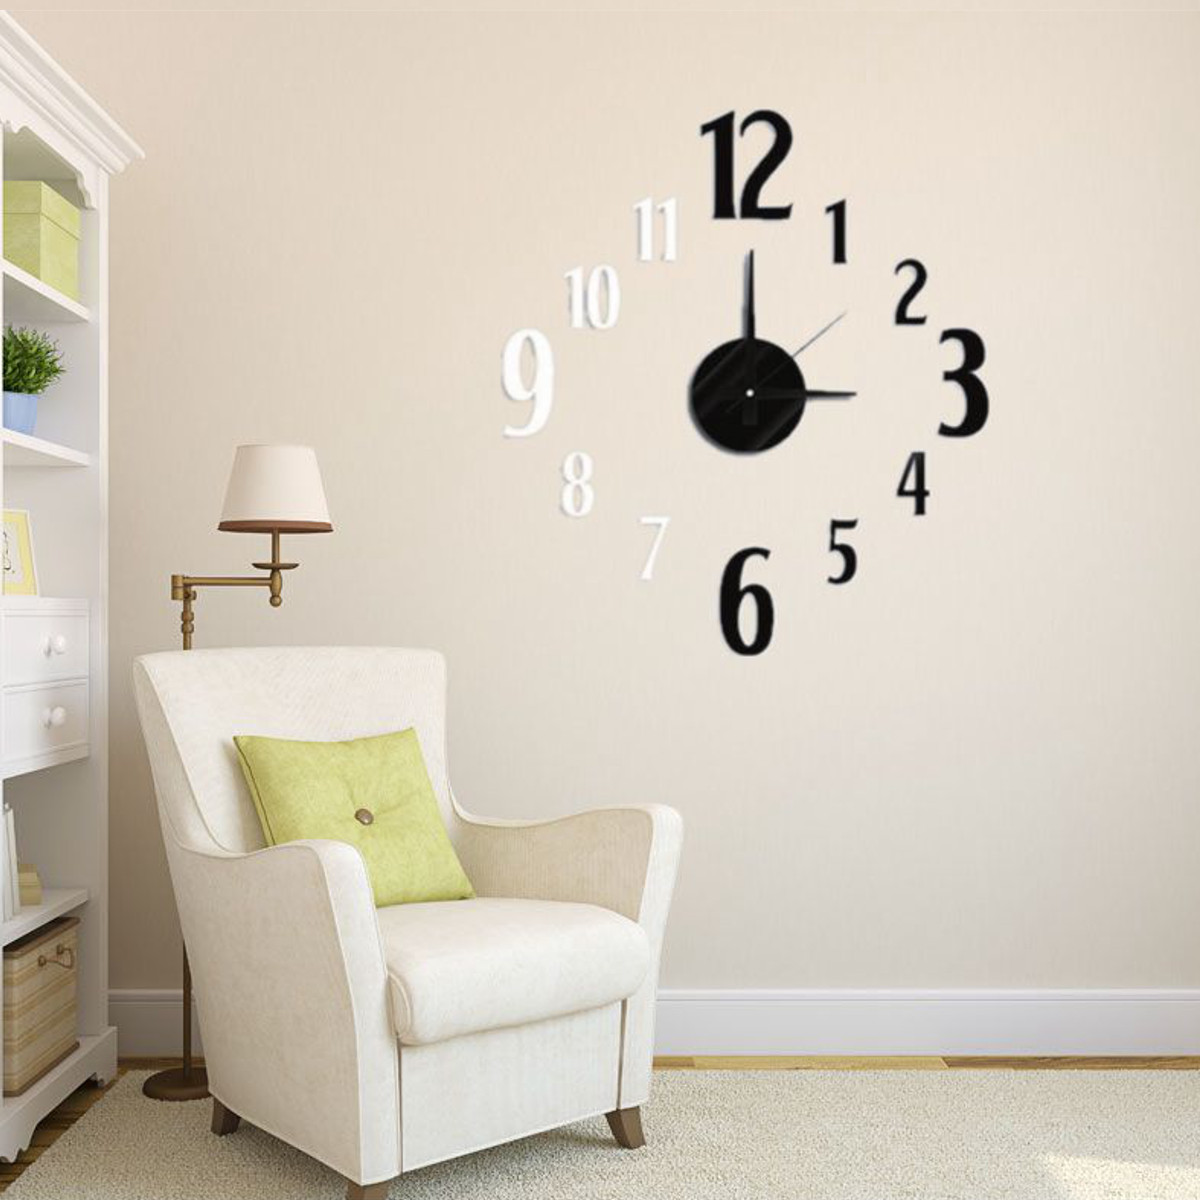 3d horloge murale pendule diy montre autocollant sticker. Black Bedroom Furniture Sets. Home Design Ideas